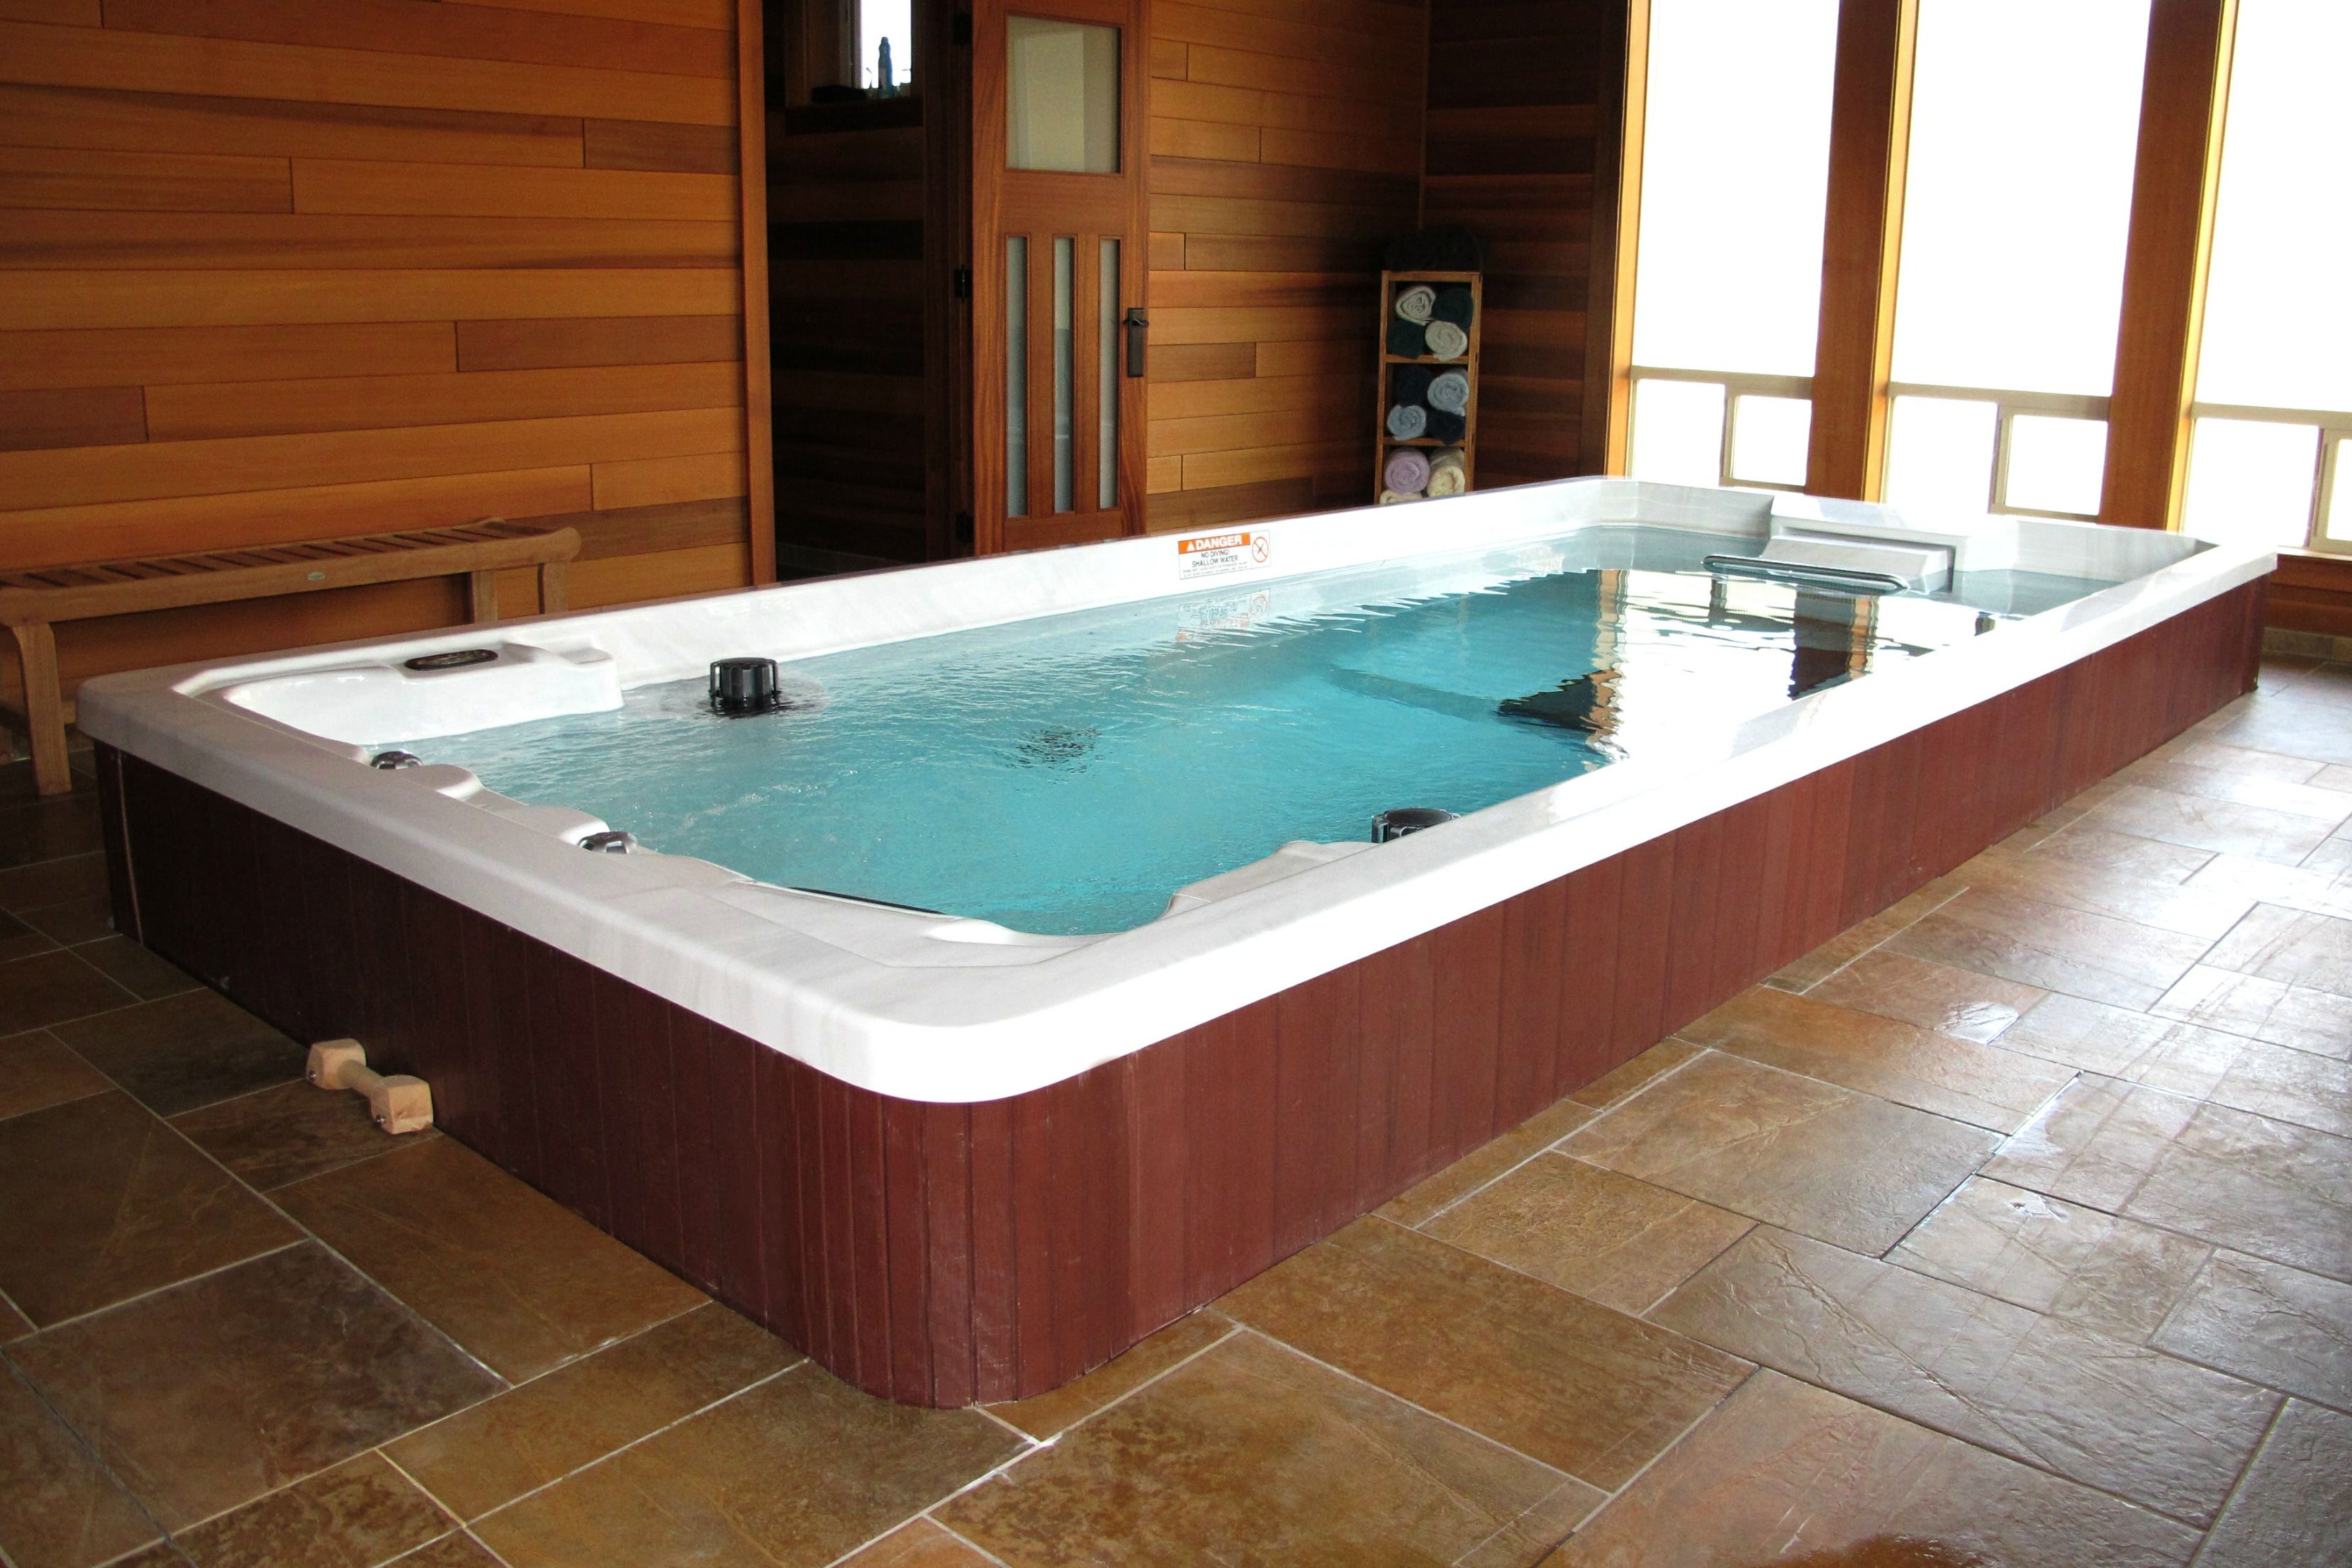 Jacuzzi Endless Pool Indoor Partially Inground 17ft Endless Pool Swim Spa